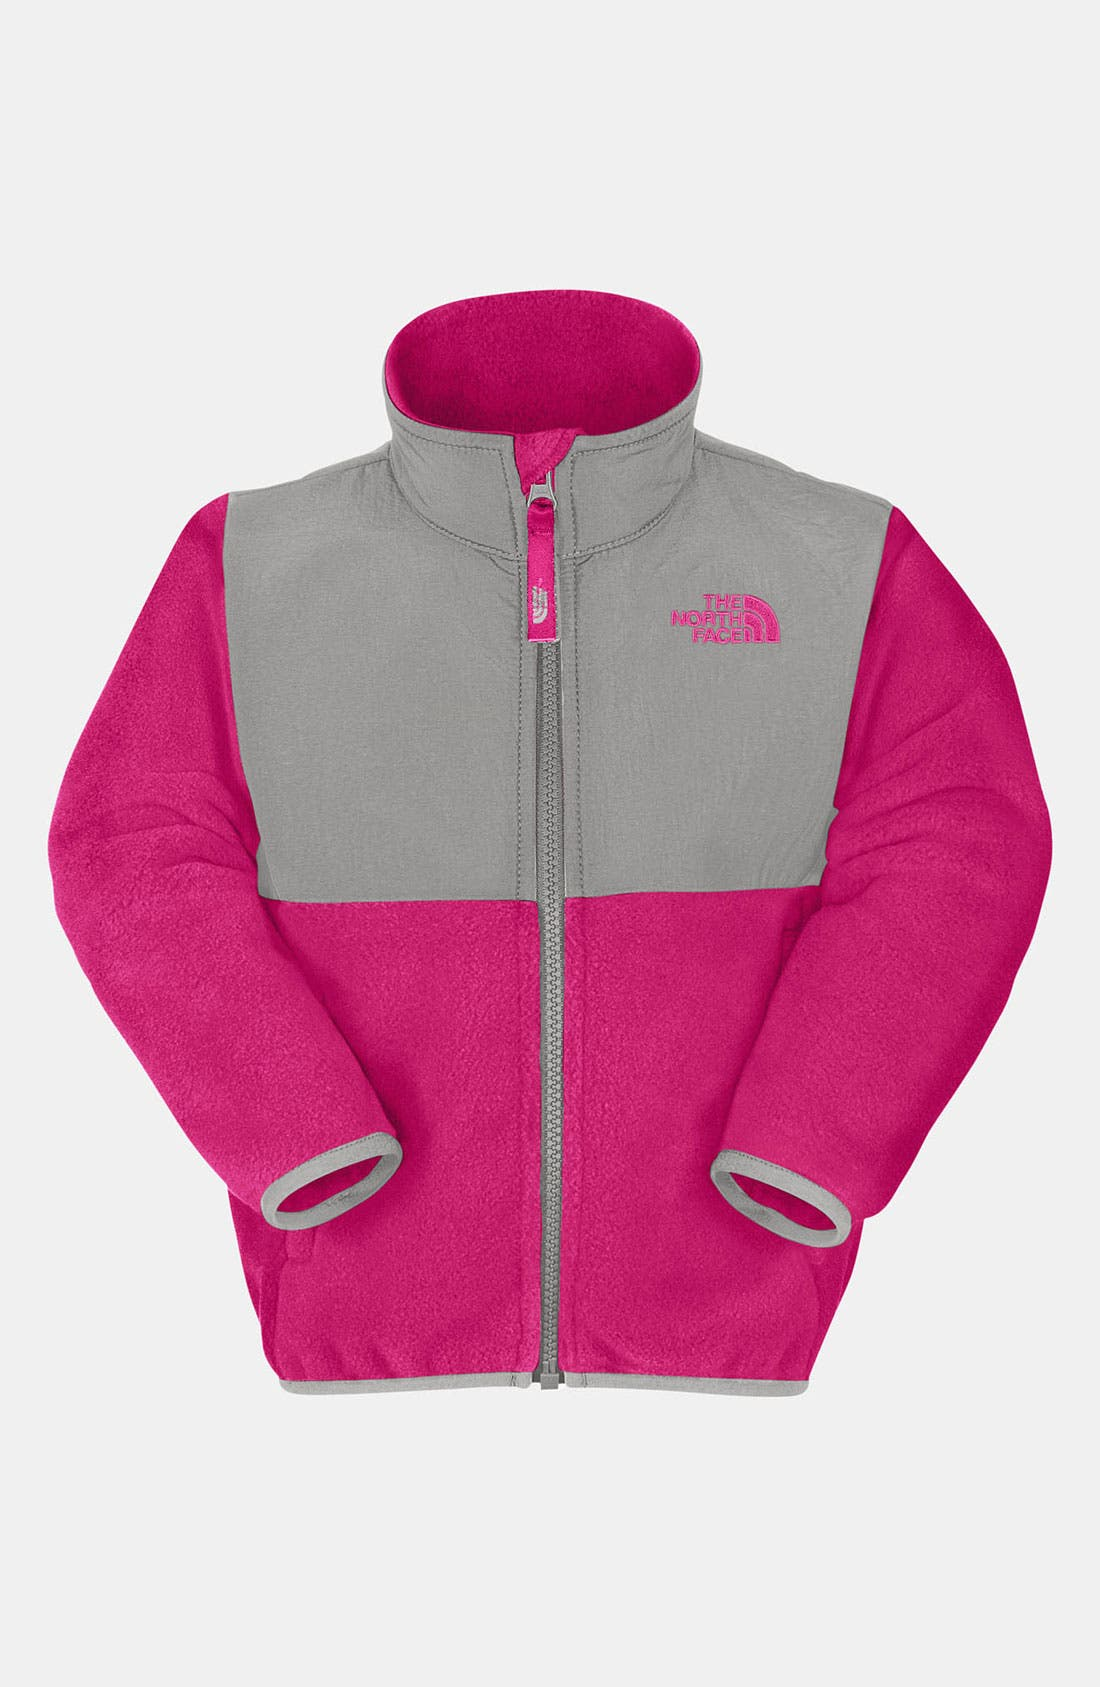 Alternate Image 1 Selected - The North Face 'Denali' Fleece Jacket (Toddler)